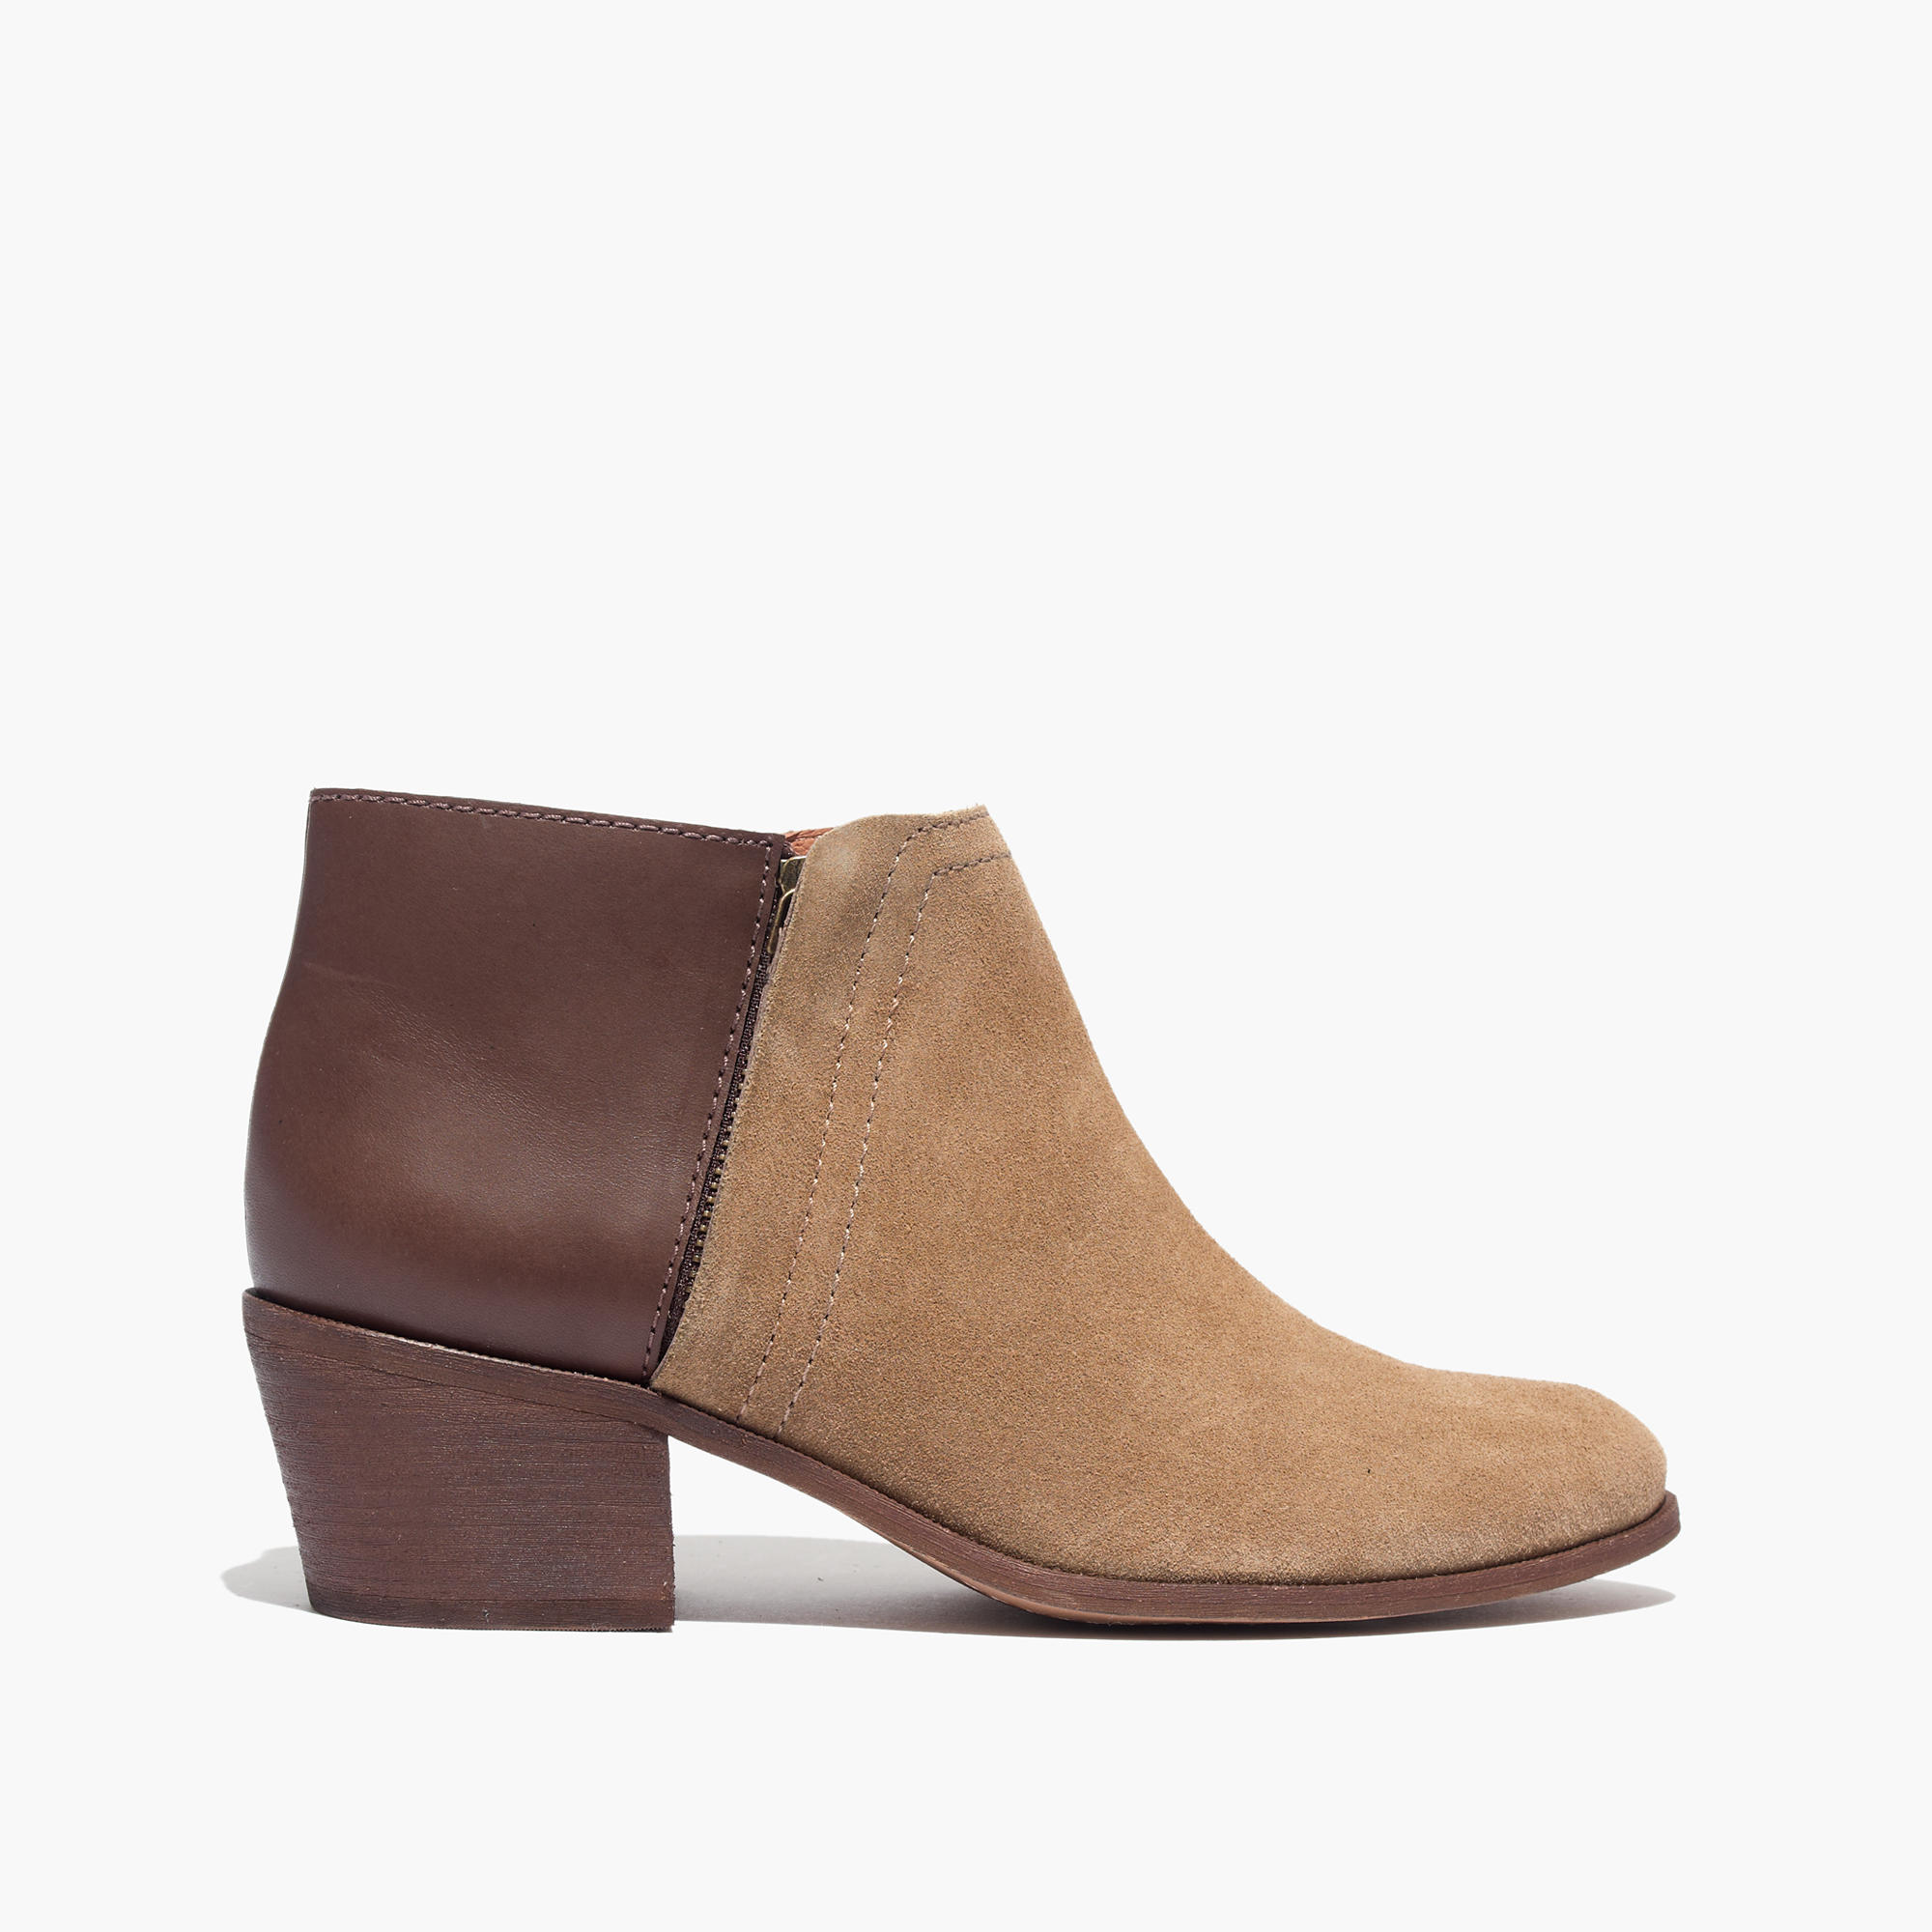 madewell boots 30% off